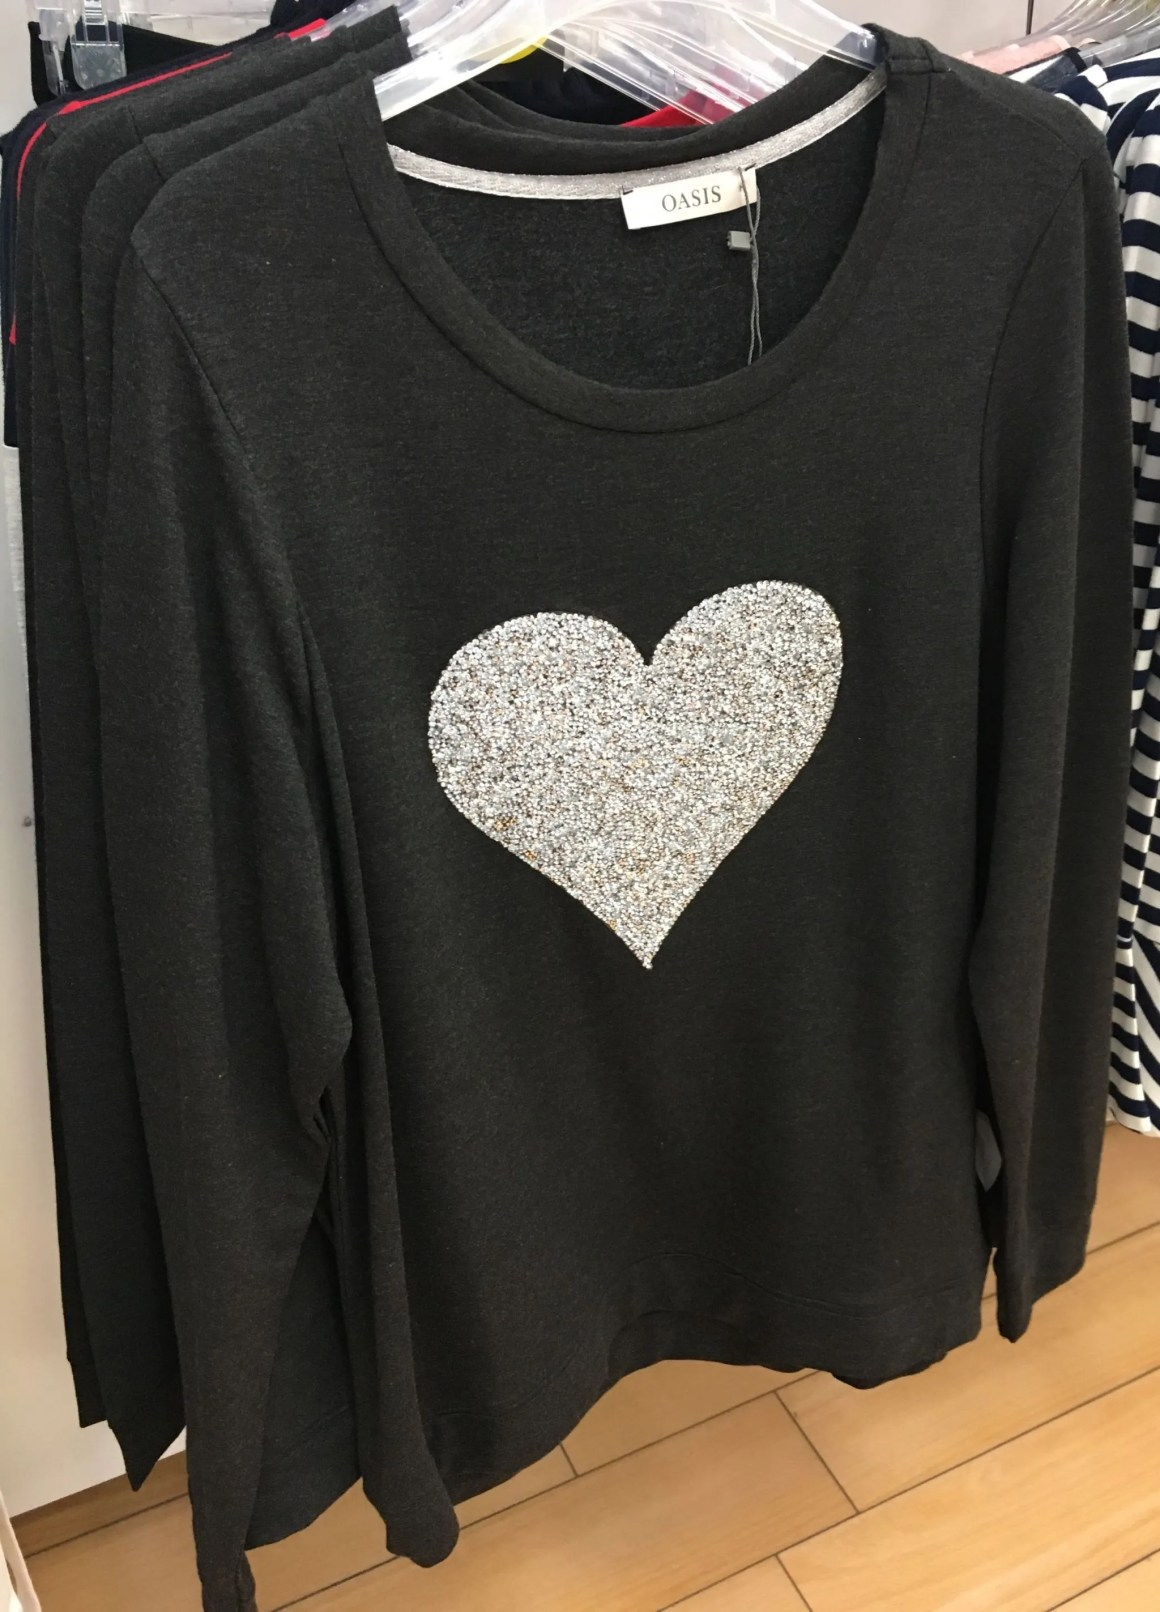 what-lizzy-loves-mothers-day-gifts-oasis-heart-jumper